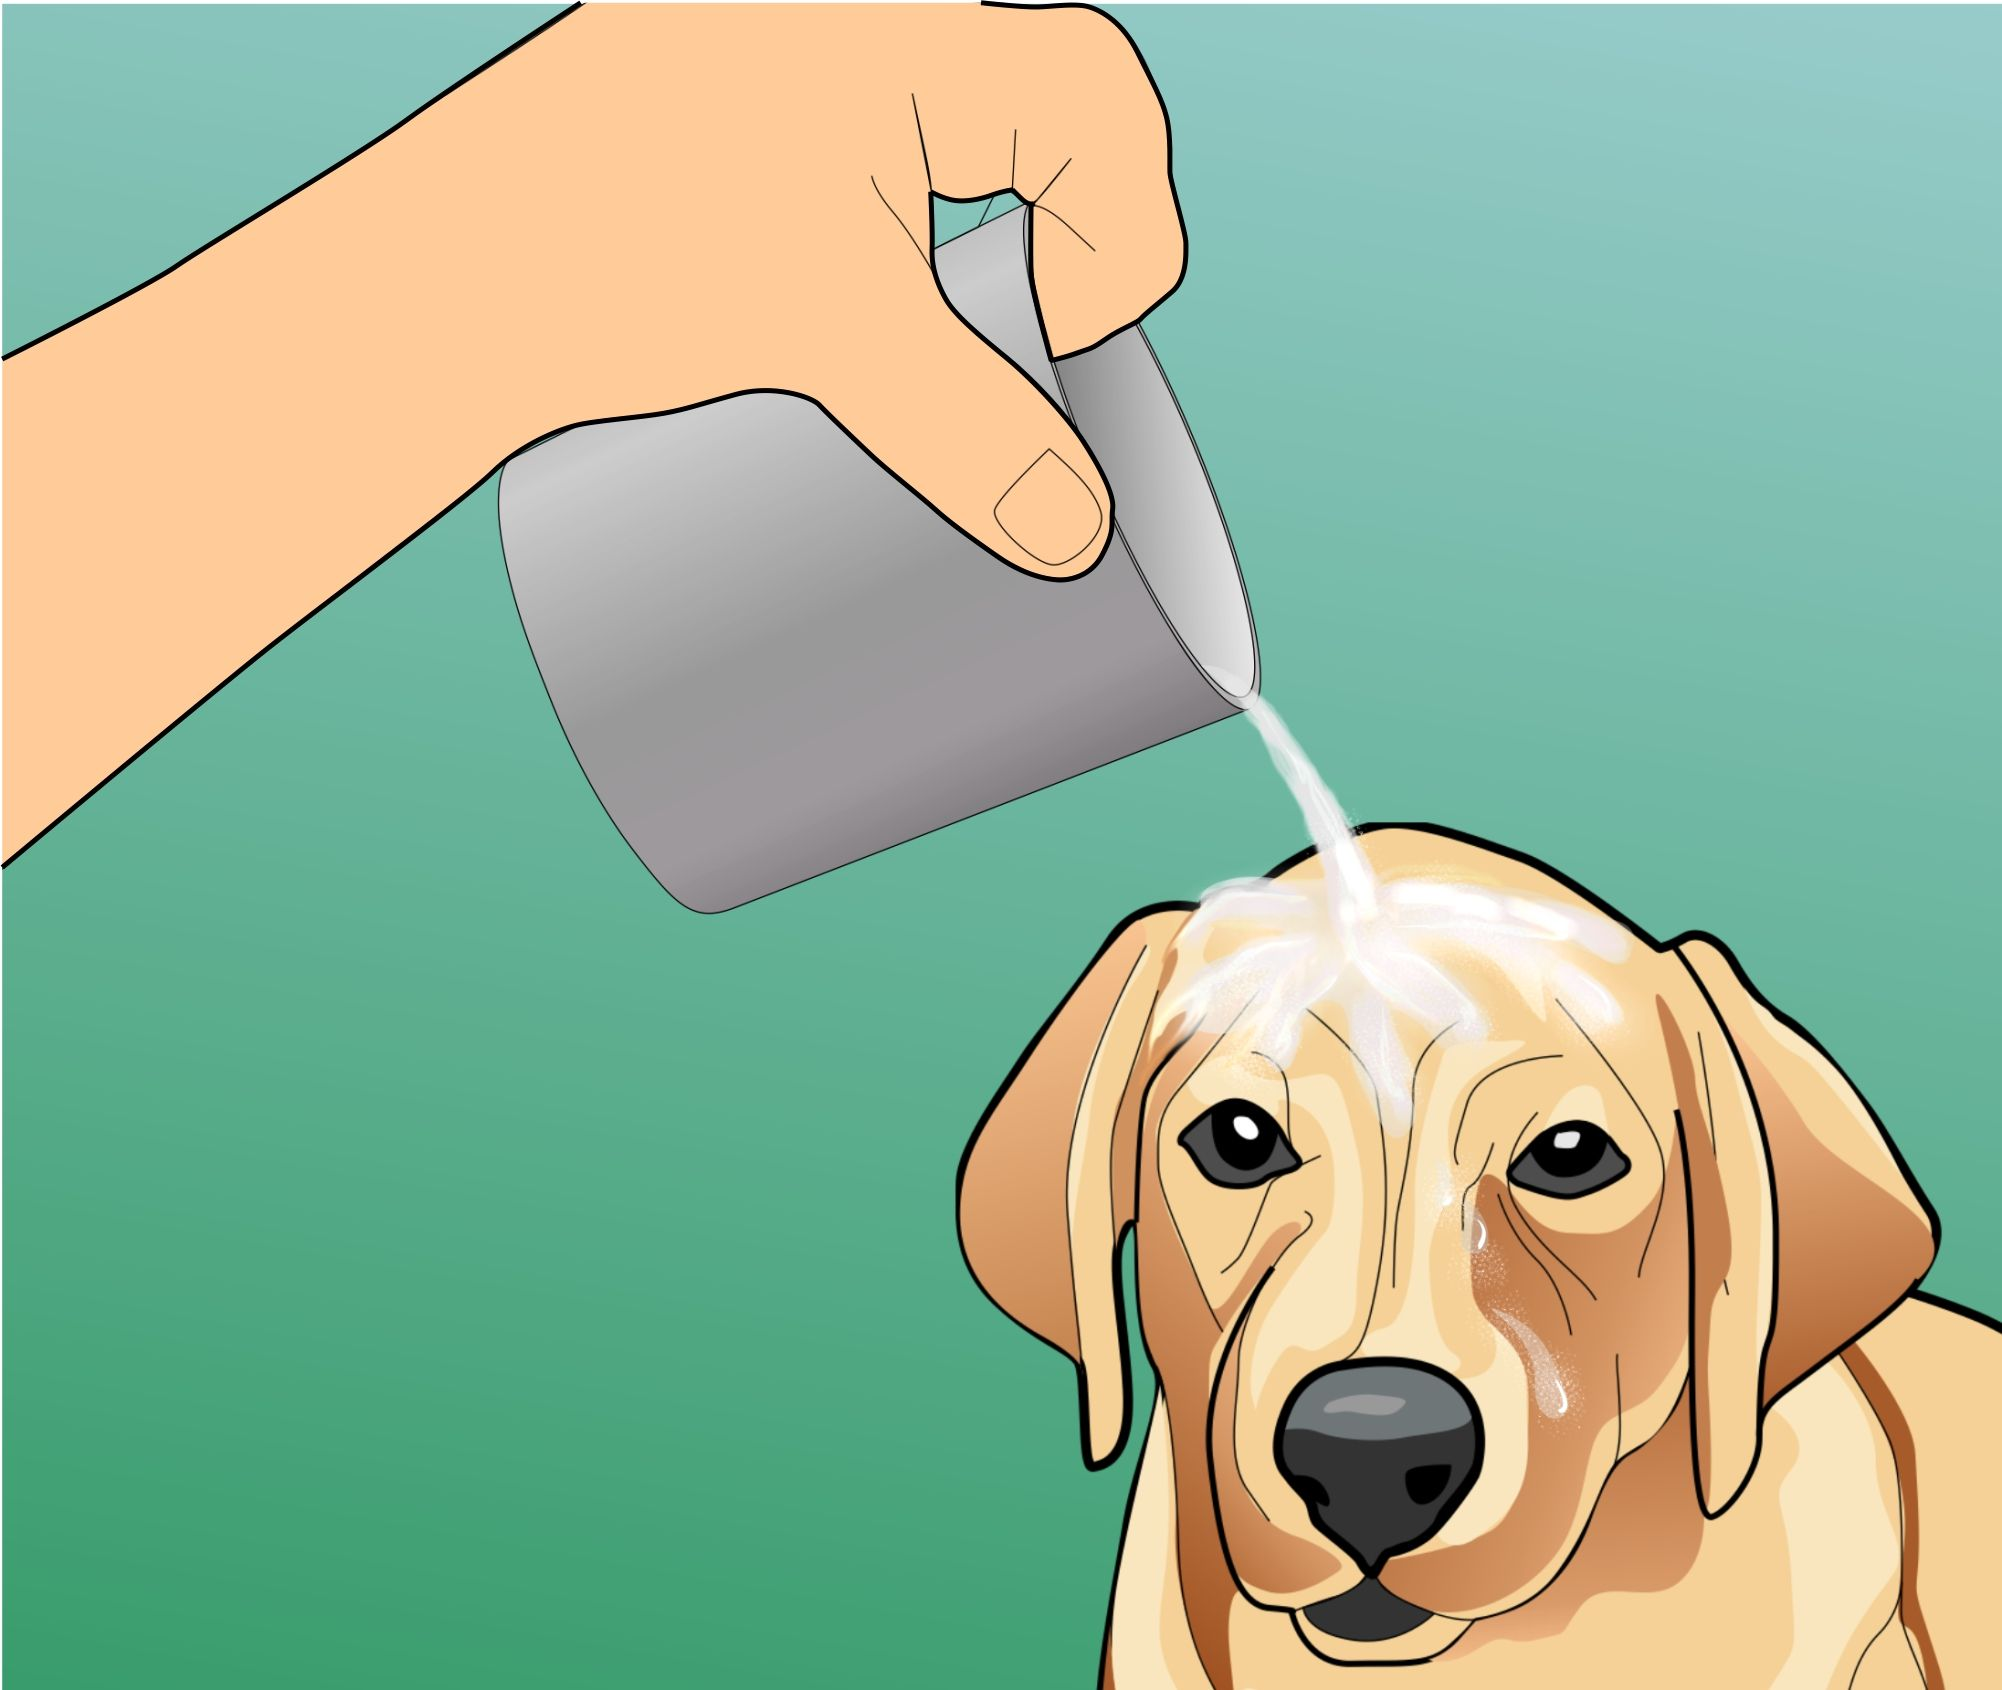 Treat Heat Stroke In Dogs Step Pour Cool Water Water Over The